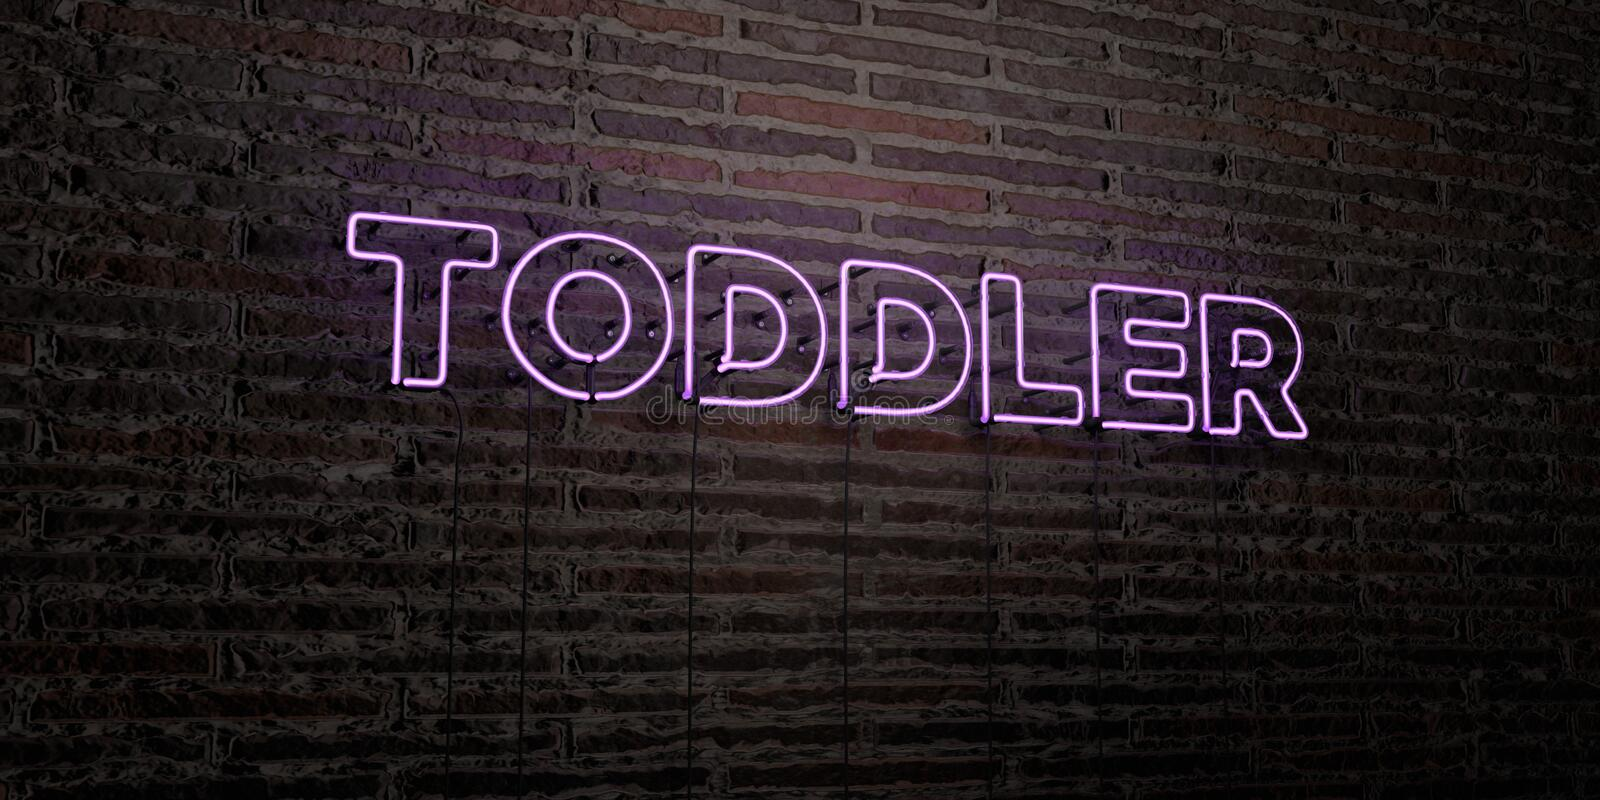 TODDLER -Realistic Neon Sign on Brick Wall background - 3D rendered royalty free stock image. Can be used for online banner ads and direct mailers royalty free illustration